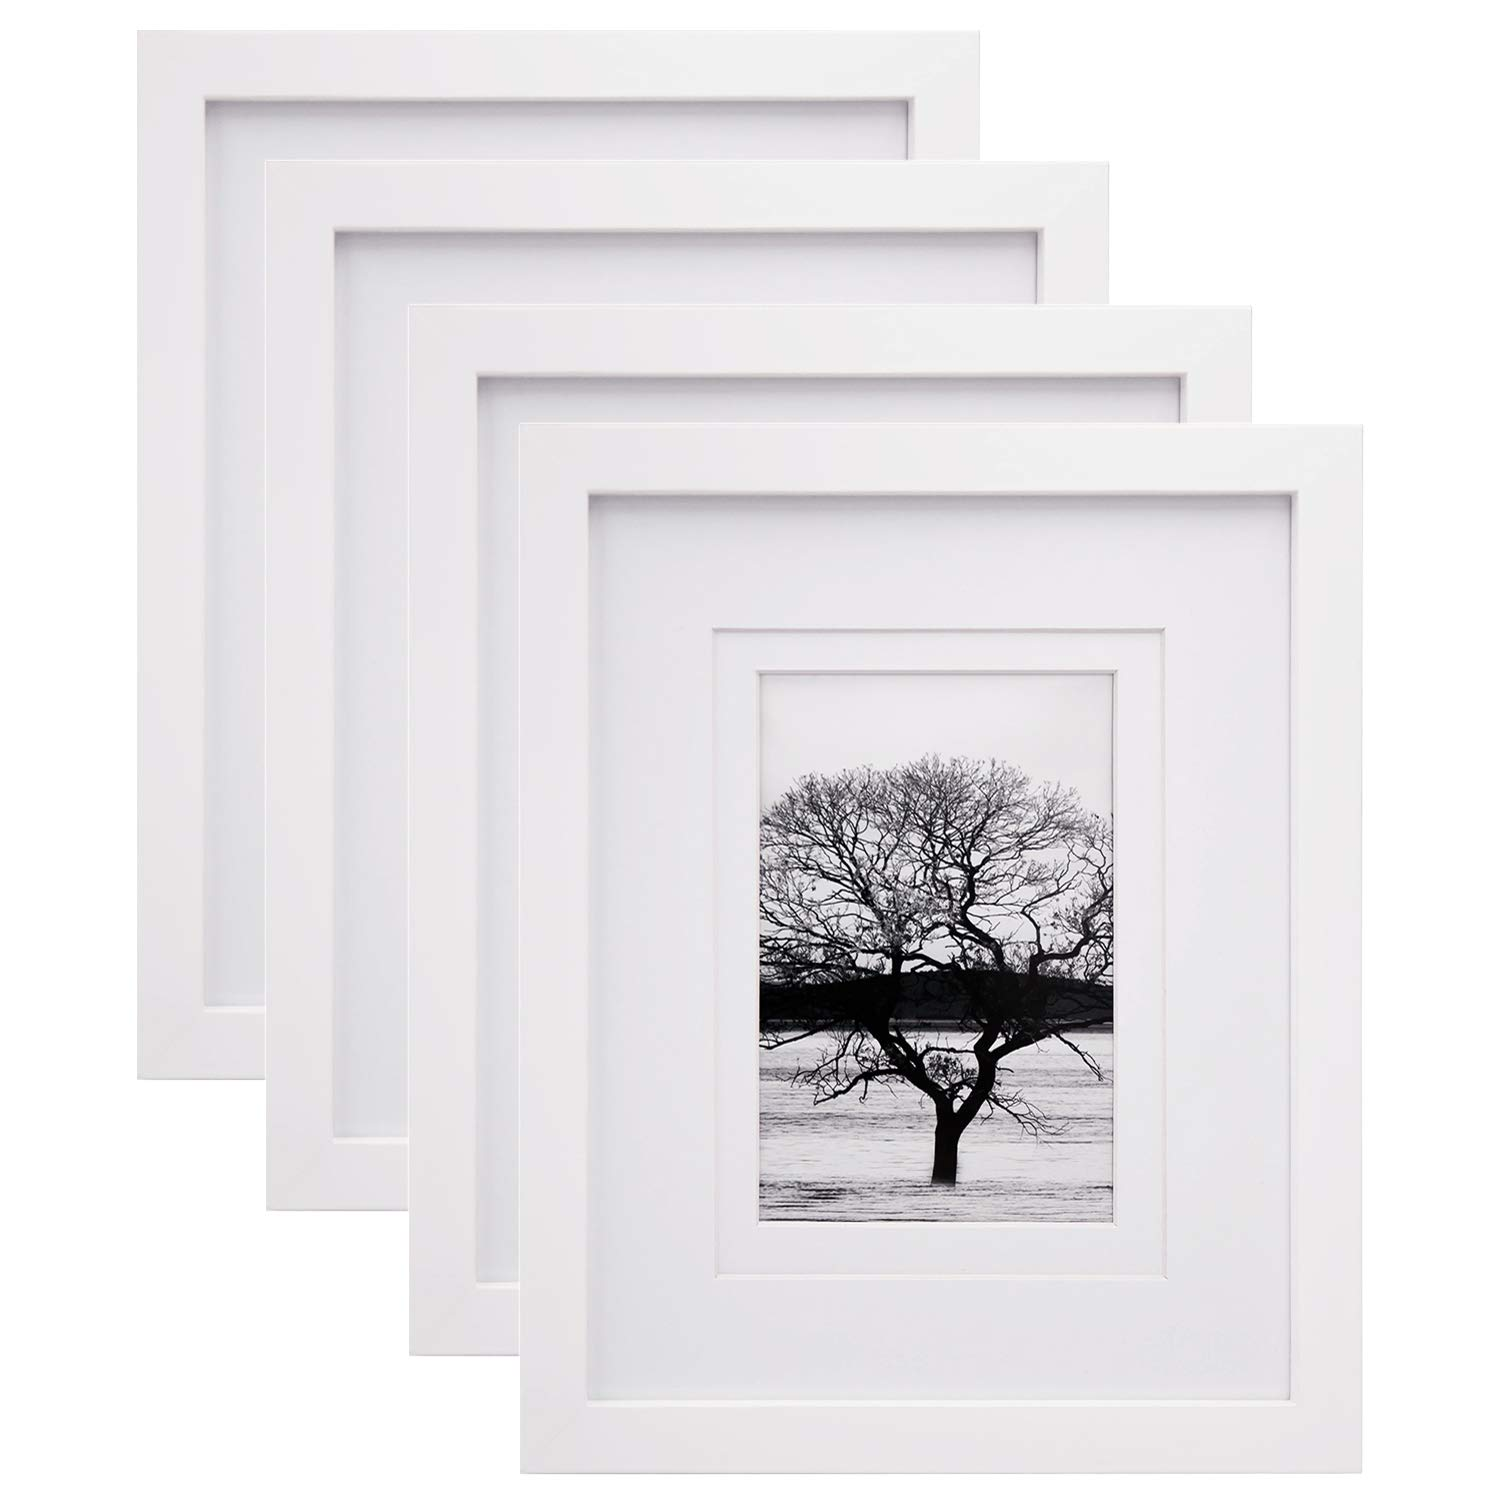 Egofine 8x10 Picture Frames 4 PCS - Made of Solid Wood HD Plexiglass for Table Top Display and Wall Mounting Photo Frame White by Egofine